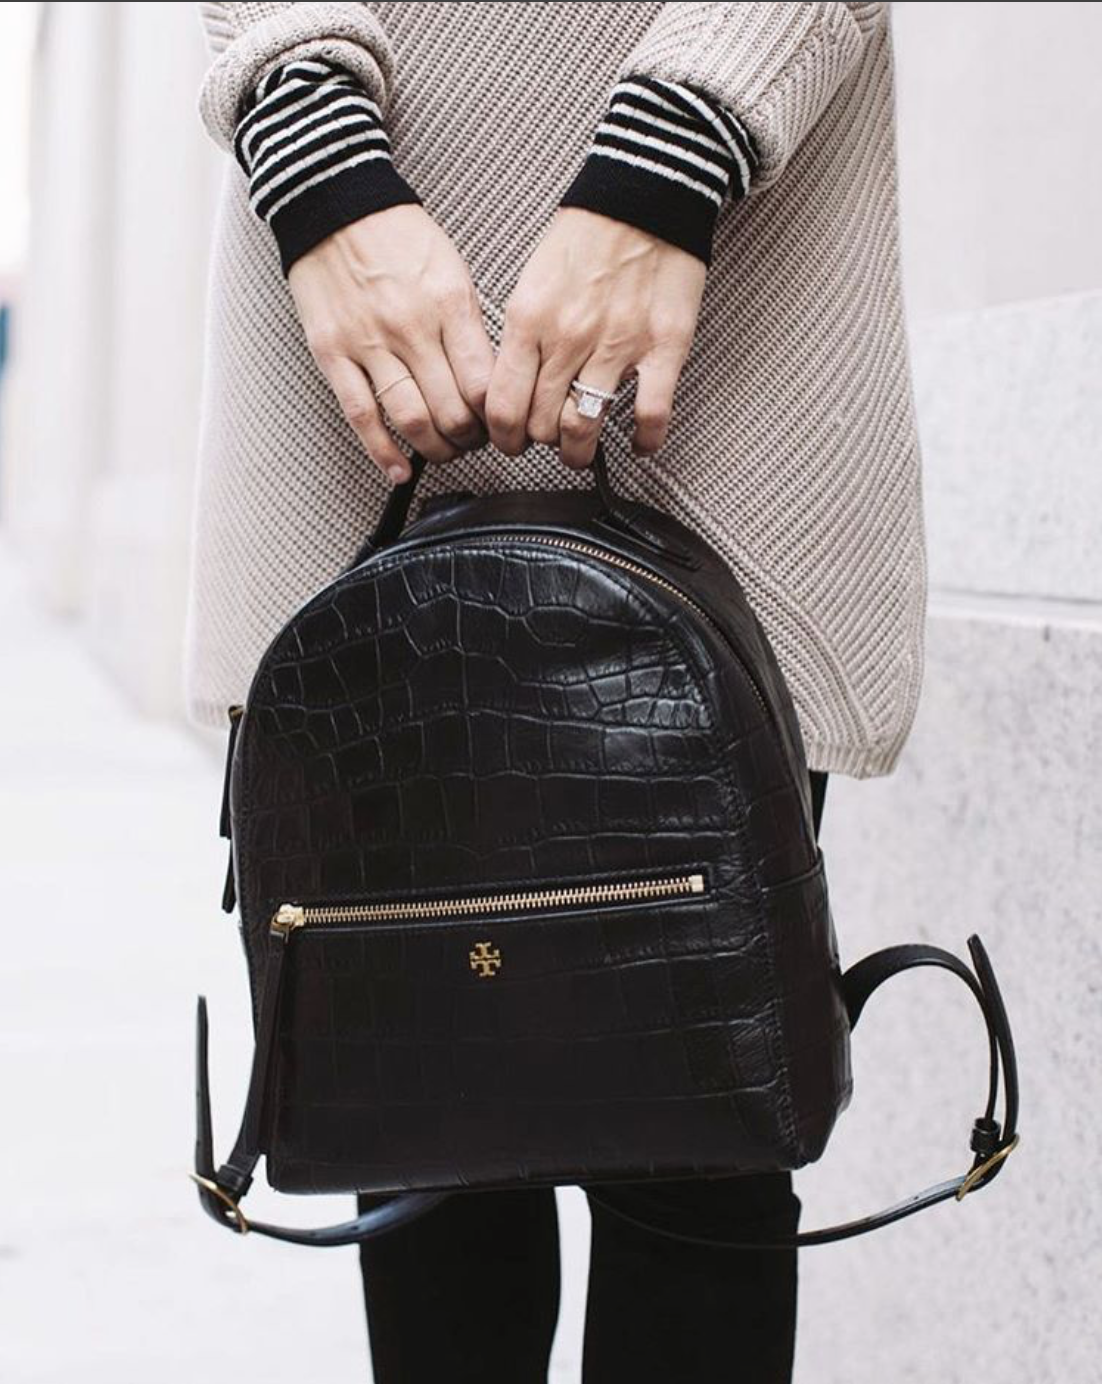 6db40c96050 Jacey Duprie of Damsel in Dior toting the Tory Burch Croc-Embossed Mini  Backpack